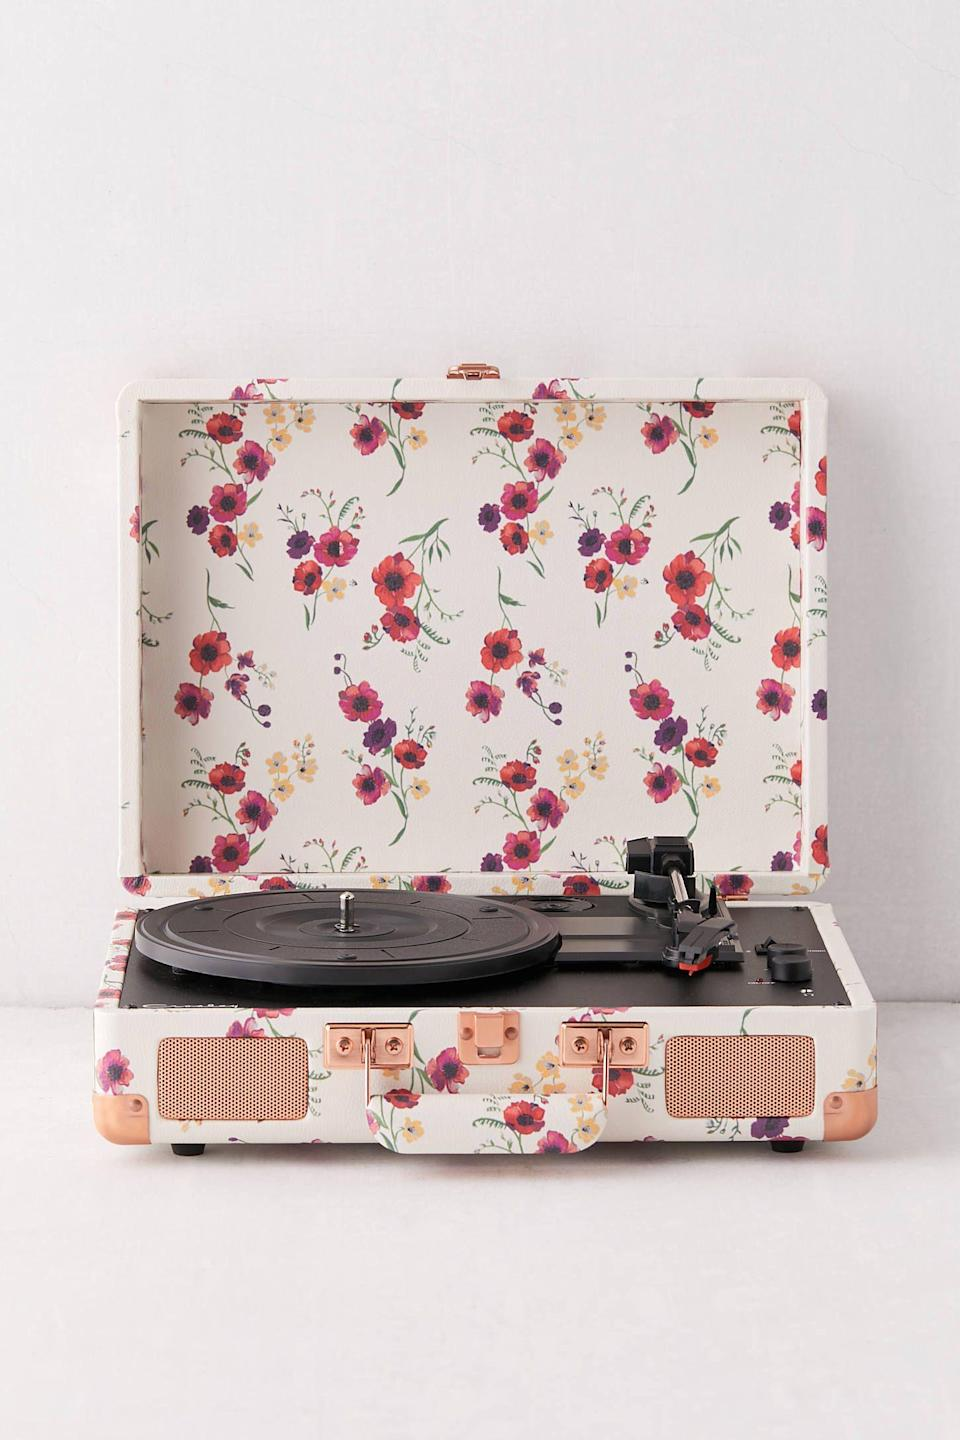 """<p><strong>Crosley</strong></p><p>urbanoutfitters.com</p><p><strong>$99.00</strong></p><p><a href=""""https://go.redirectingat.com?id=74968X1596630&url=https%3A%2F%2Fwww.urbanoutfitters.com%2Fshop%2Fcrosley-uo-exclusive-poppy-floral-cruiser-bluetooth-record-player&sref=https%3A%2F%2Fwww.countryliving.com%2Fshopping%2Fgifts%2Fg23480472%2Fteenage-girl-gifts%2F"""" rel=""""nofollow noopener"""" target=""""_blank"""" data-ylk=""""slk:Shop Now"""" class=""""link rapid-noclick-resp"""">Shop Now</a></p><p>It's a fact of life: teenagers play their music <em>way</em> too loud. At least now she can play your vinyl records in her room in style. </p>"""